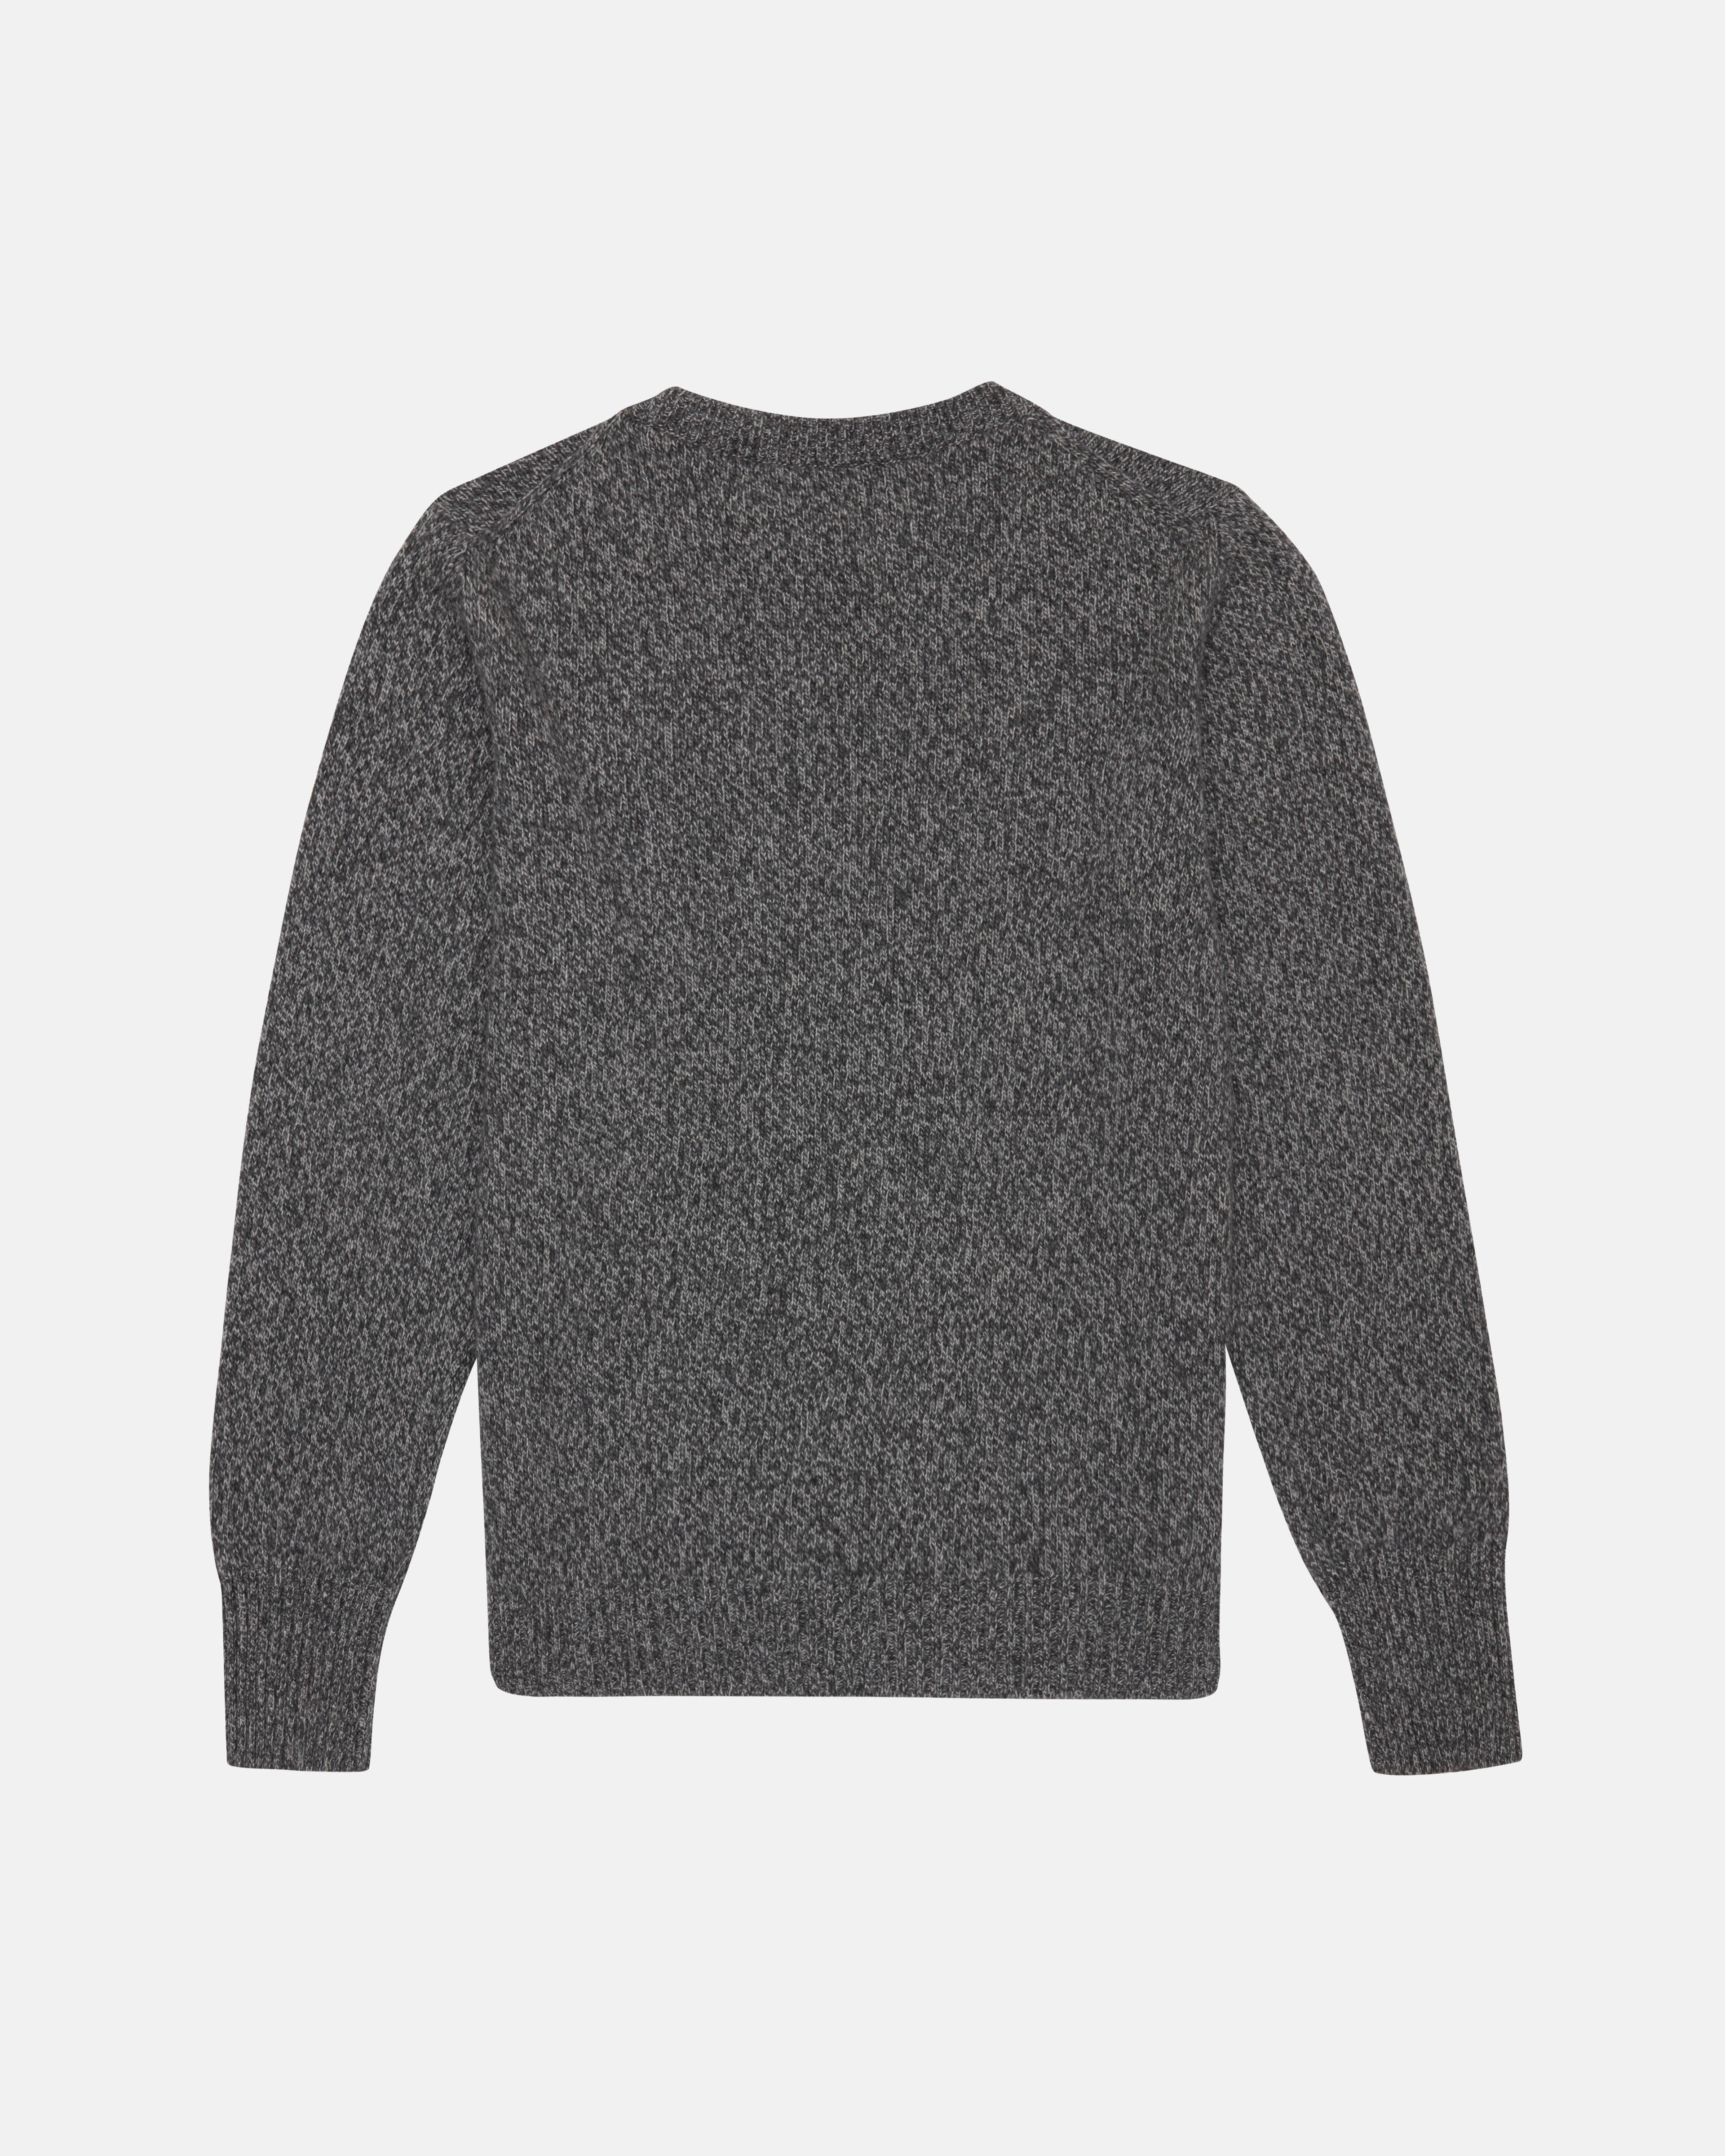 Recycled Cashmere Sweater - Charcoal